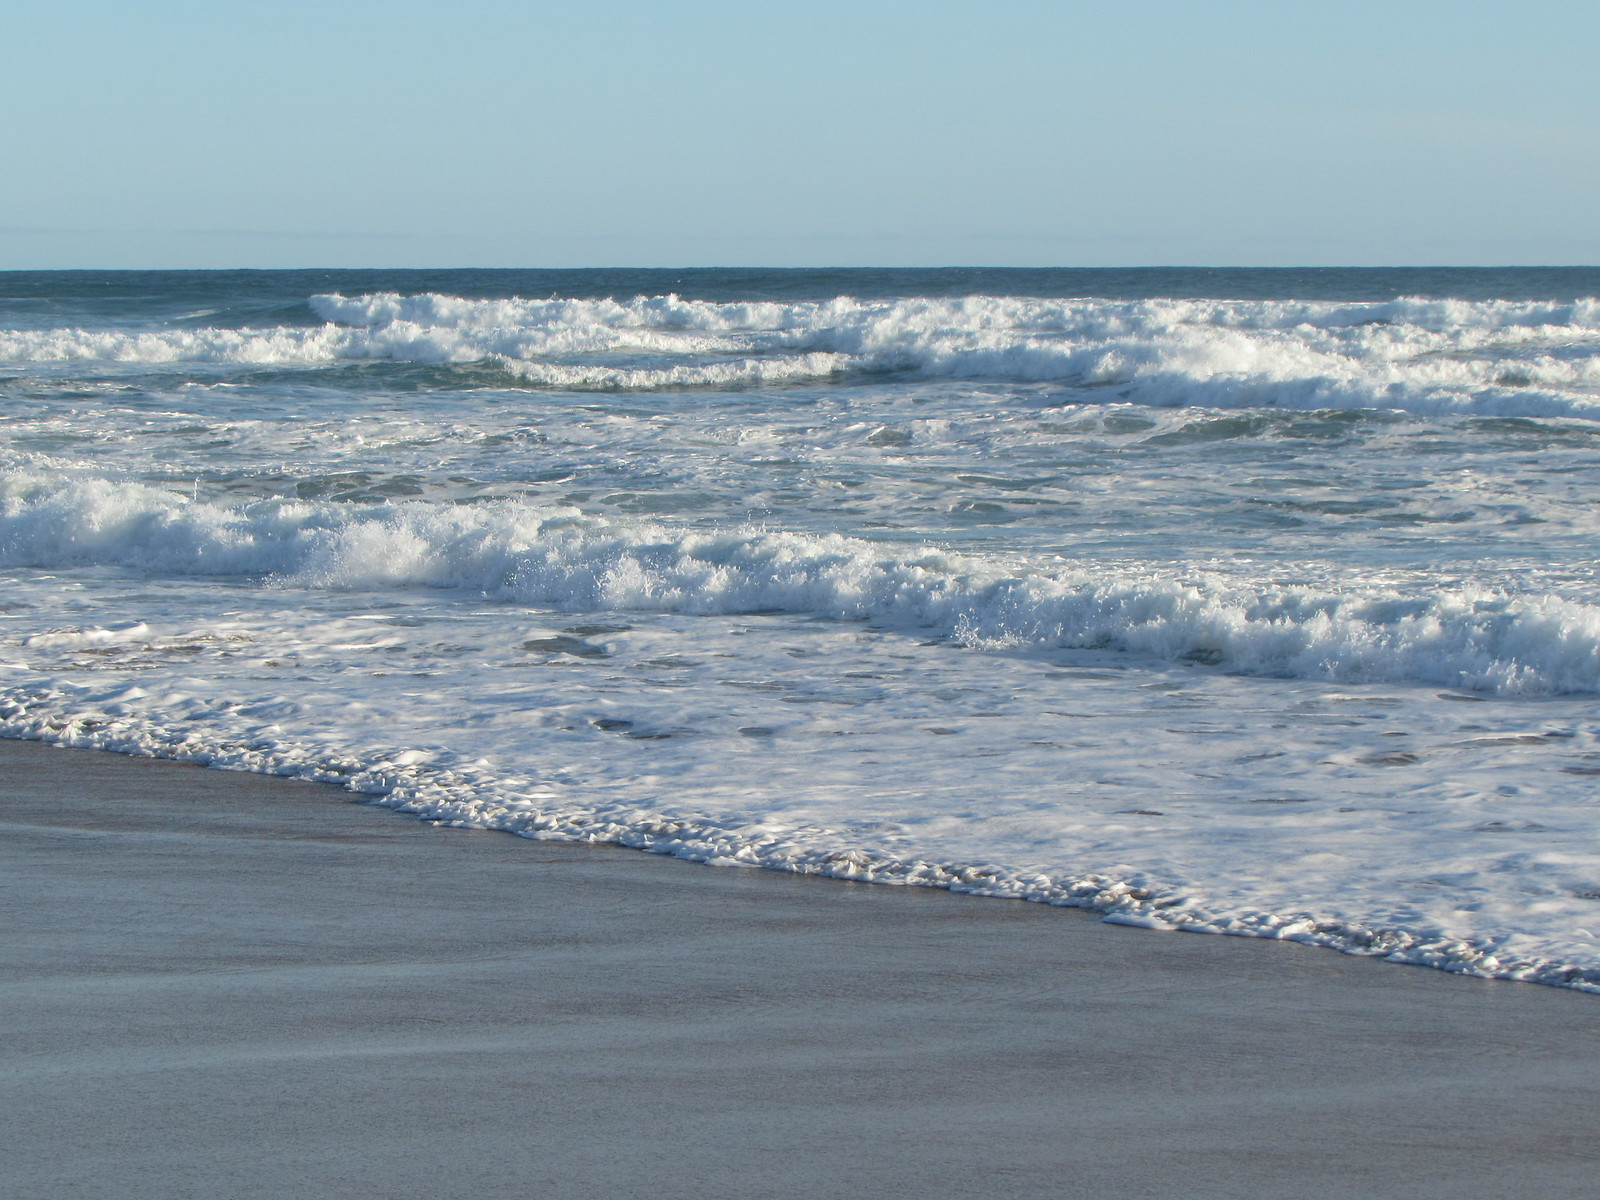 More waves